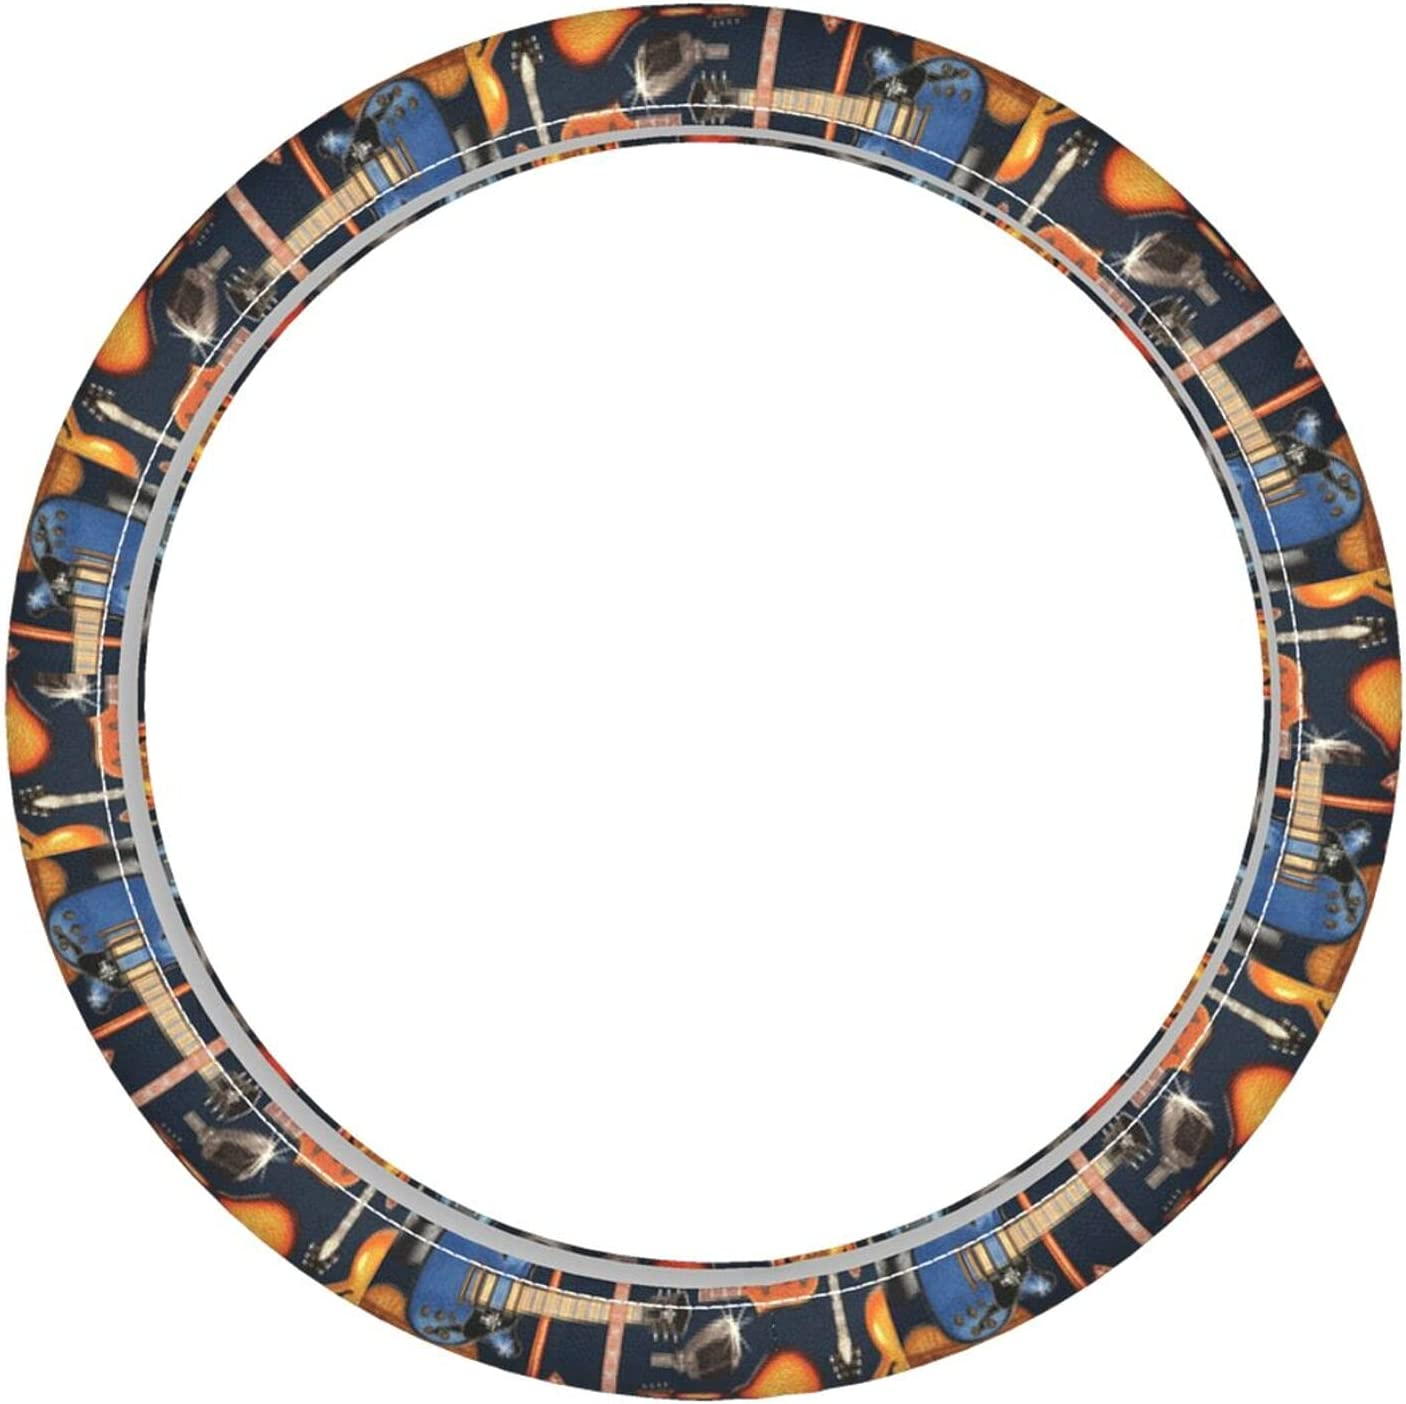 Newwo Max Overseas parallel import regular item 88% OFF Guitar Music Car Accessories Steering Wheel Cover Leather